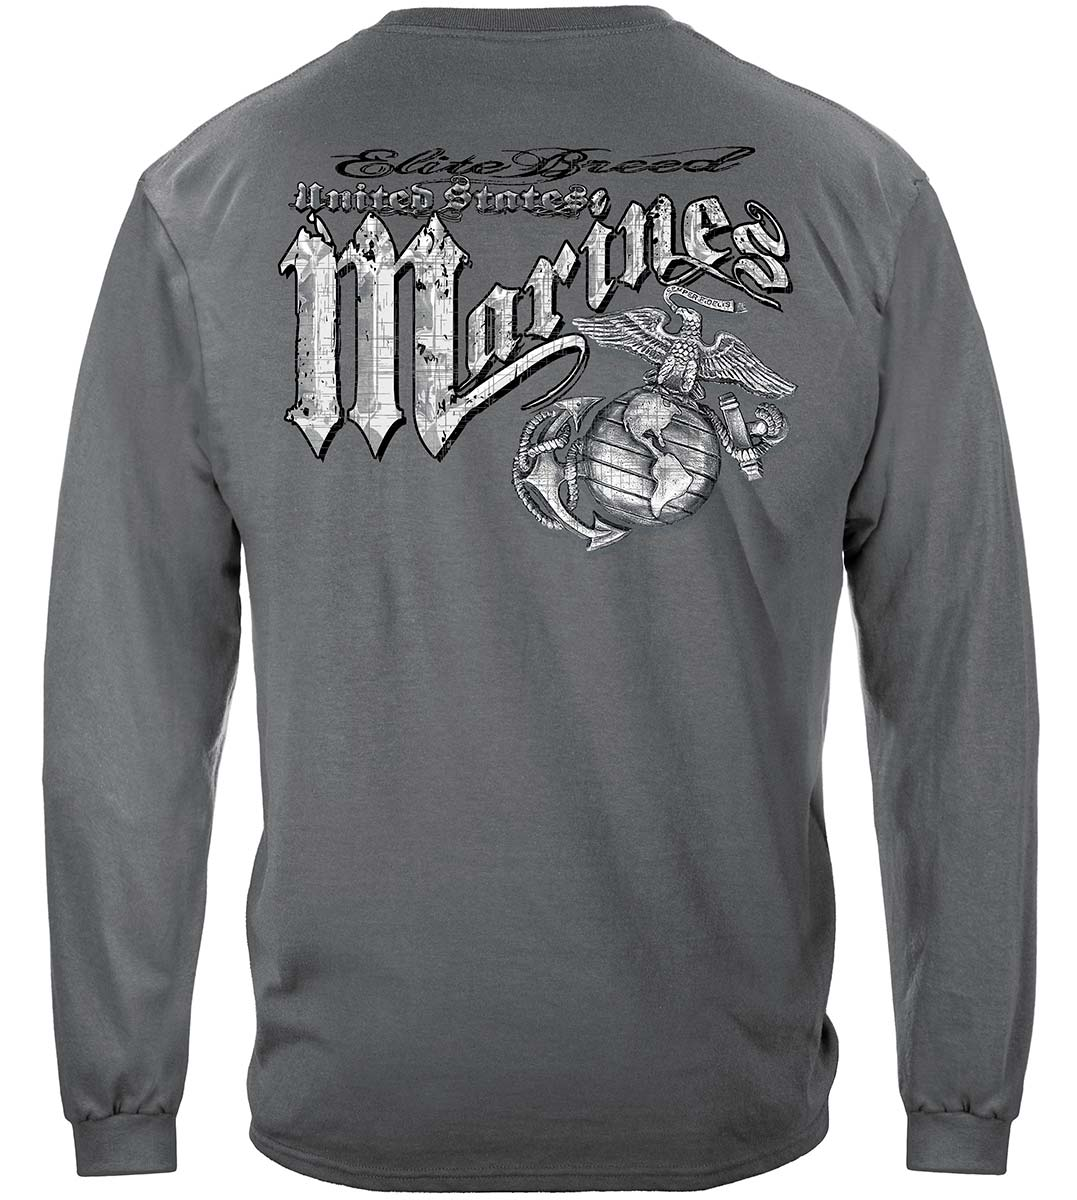 Marines Eagle Elite Breed Silver Foil Premium Long Sleeves